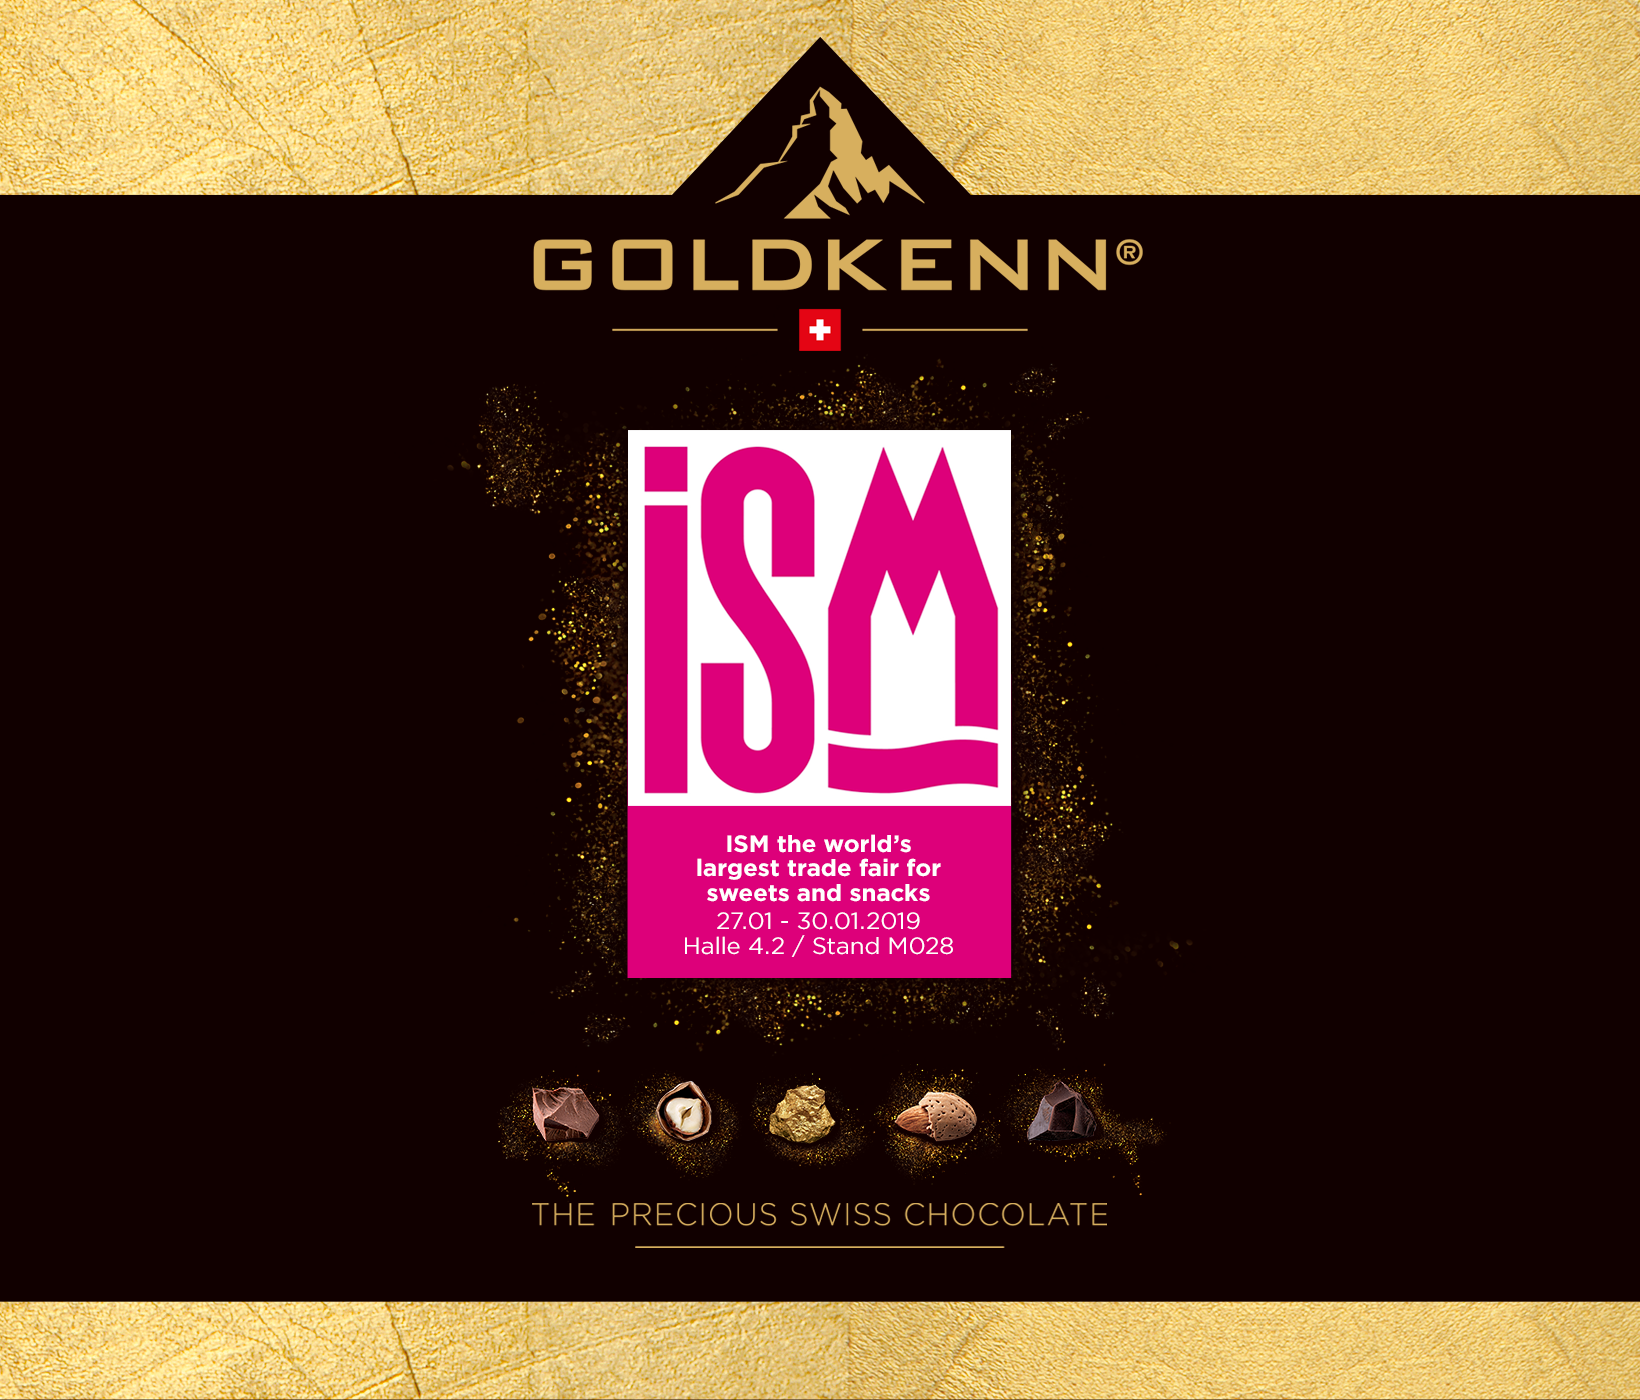 GOLDKENN at ISM, Cologne (DE)